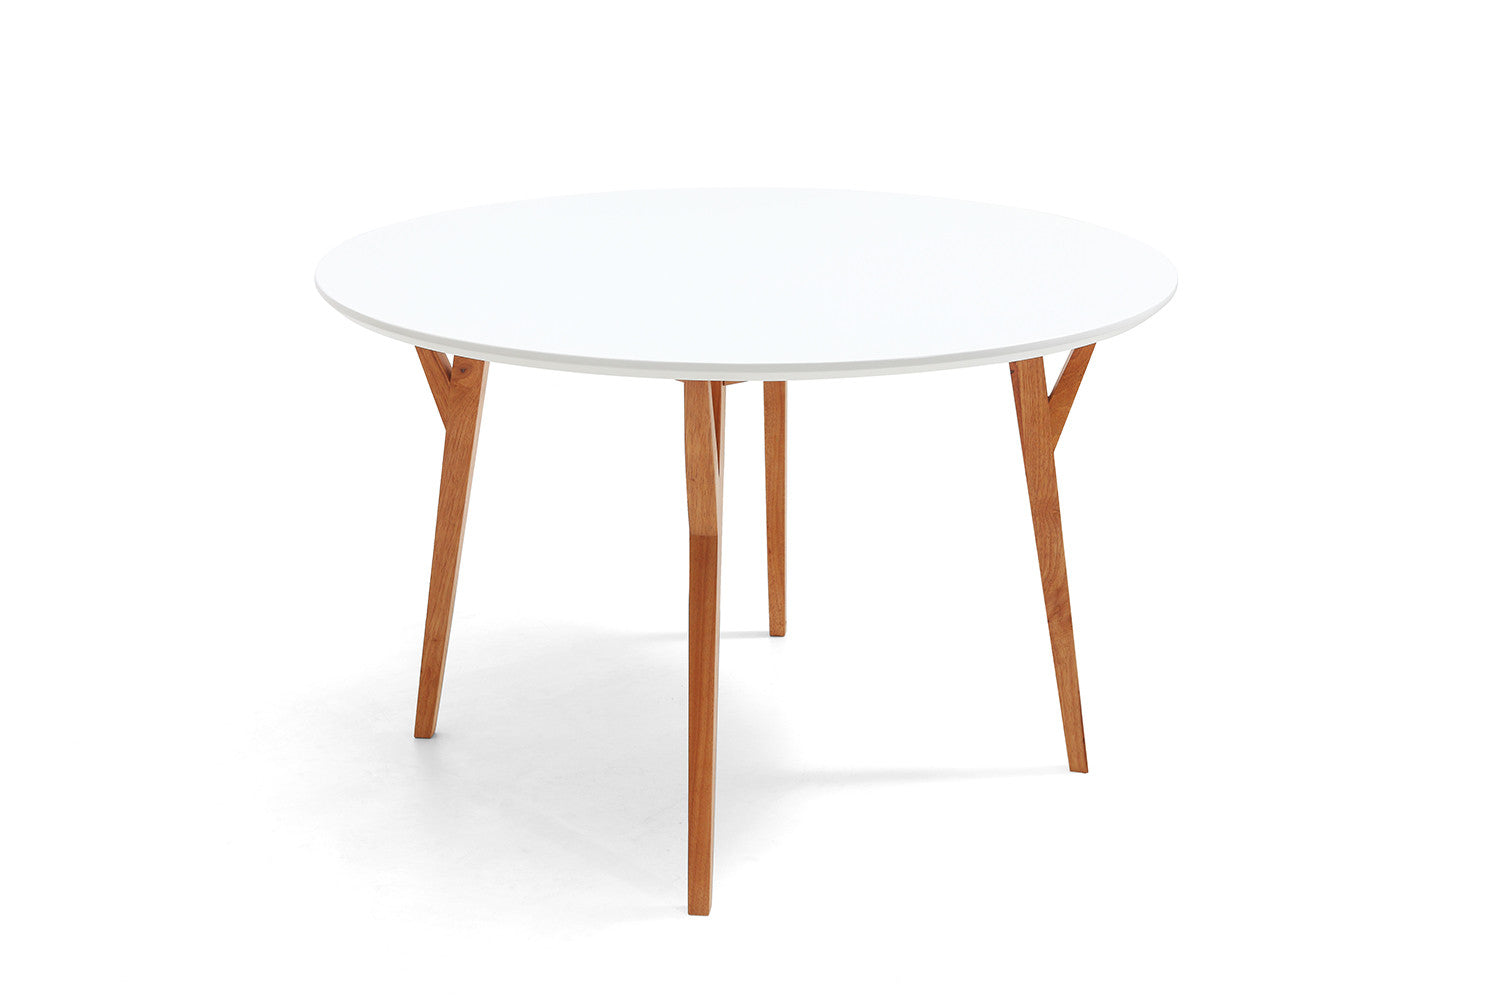 Table de salle manger ronde design scandinave moesa for Table salle manger verre bois design